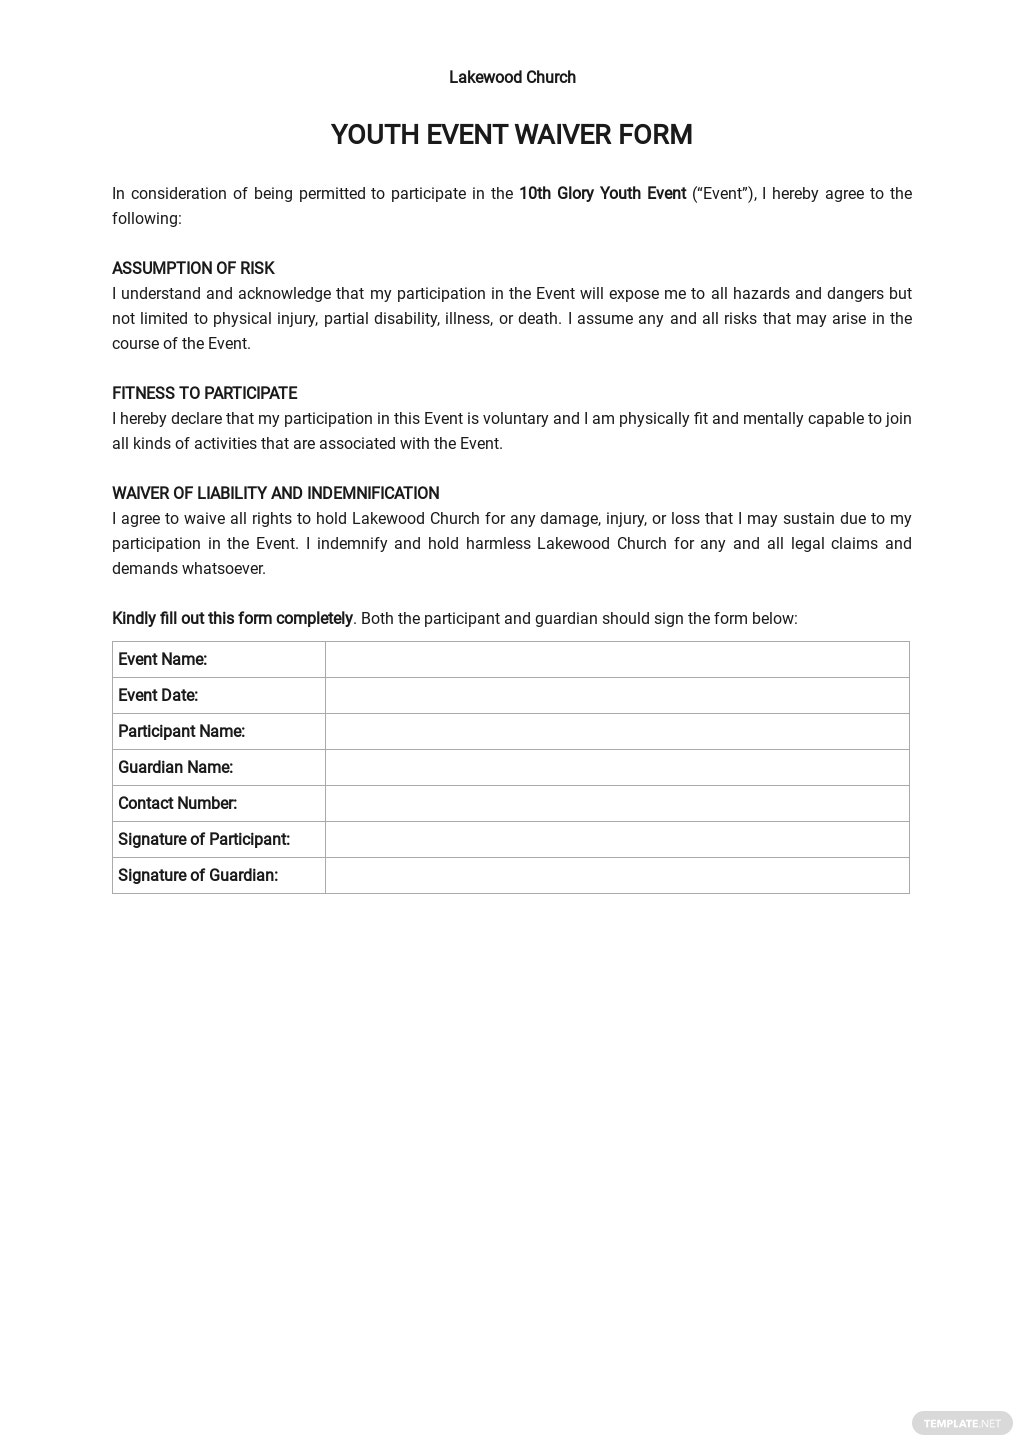 Youth Event Waiver Form Template